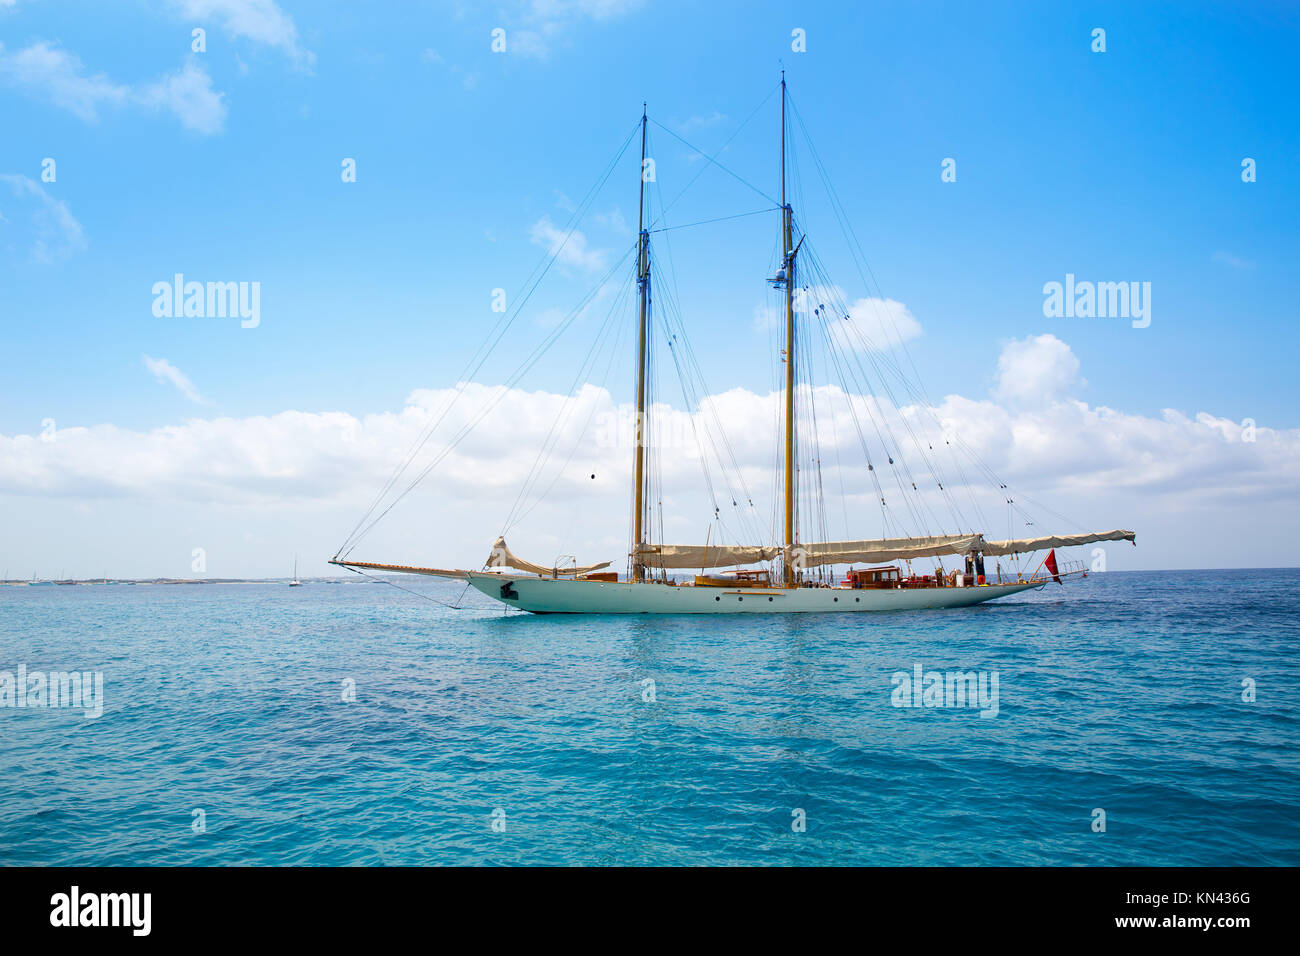 Illetes Illetas Formentera yacht sailboat anchored in turquise Mediterranean. - Stock Image